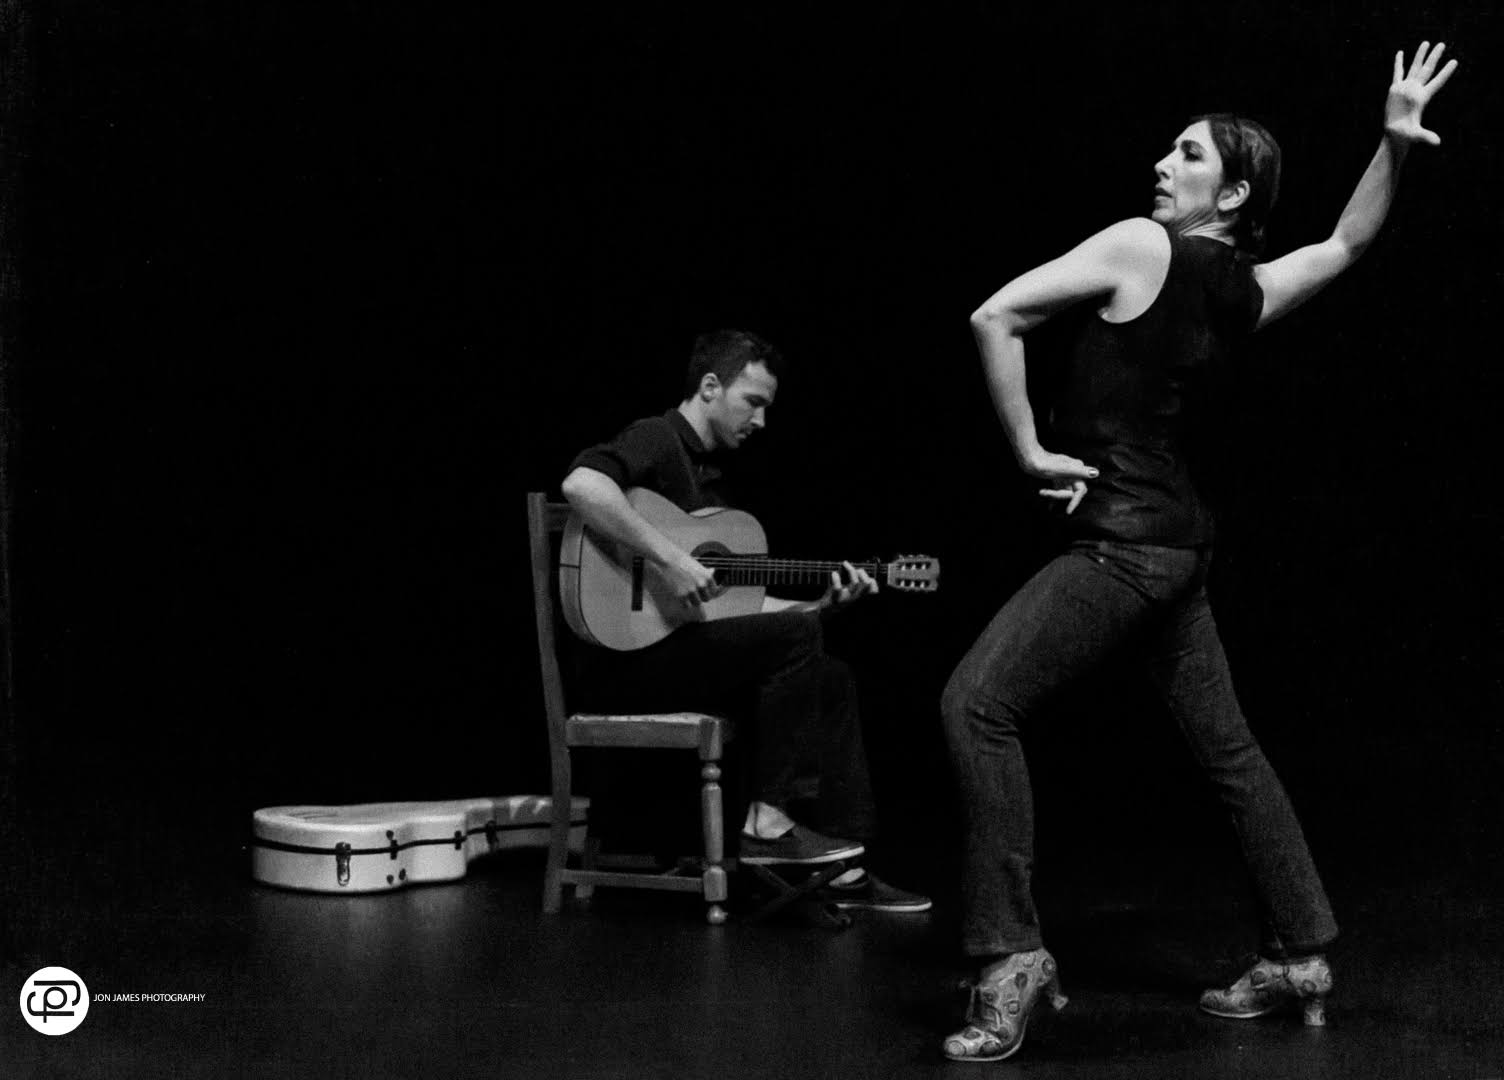 dan macneil seated in background playing flamenco guitar while maria osende strikes a powerful dance pose